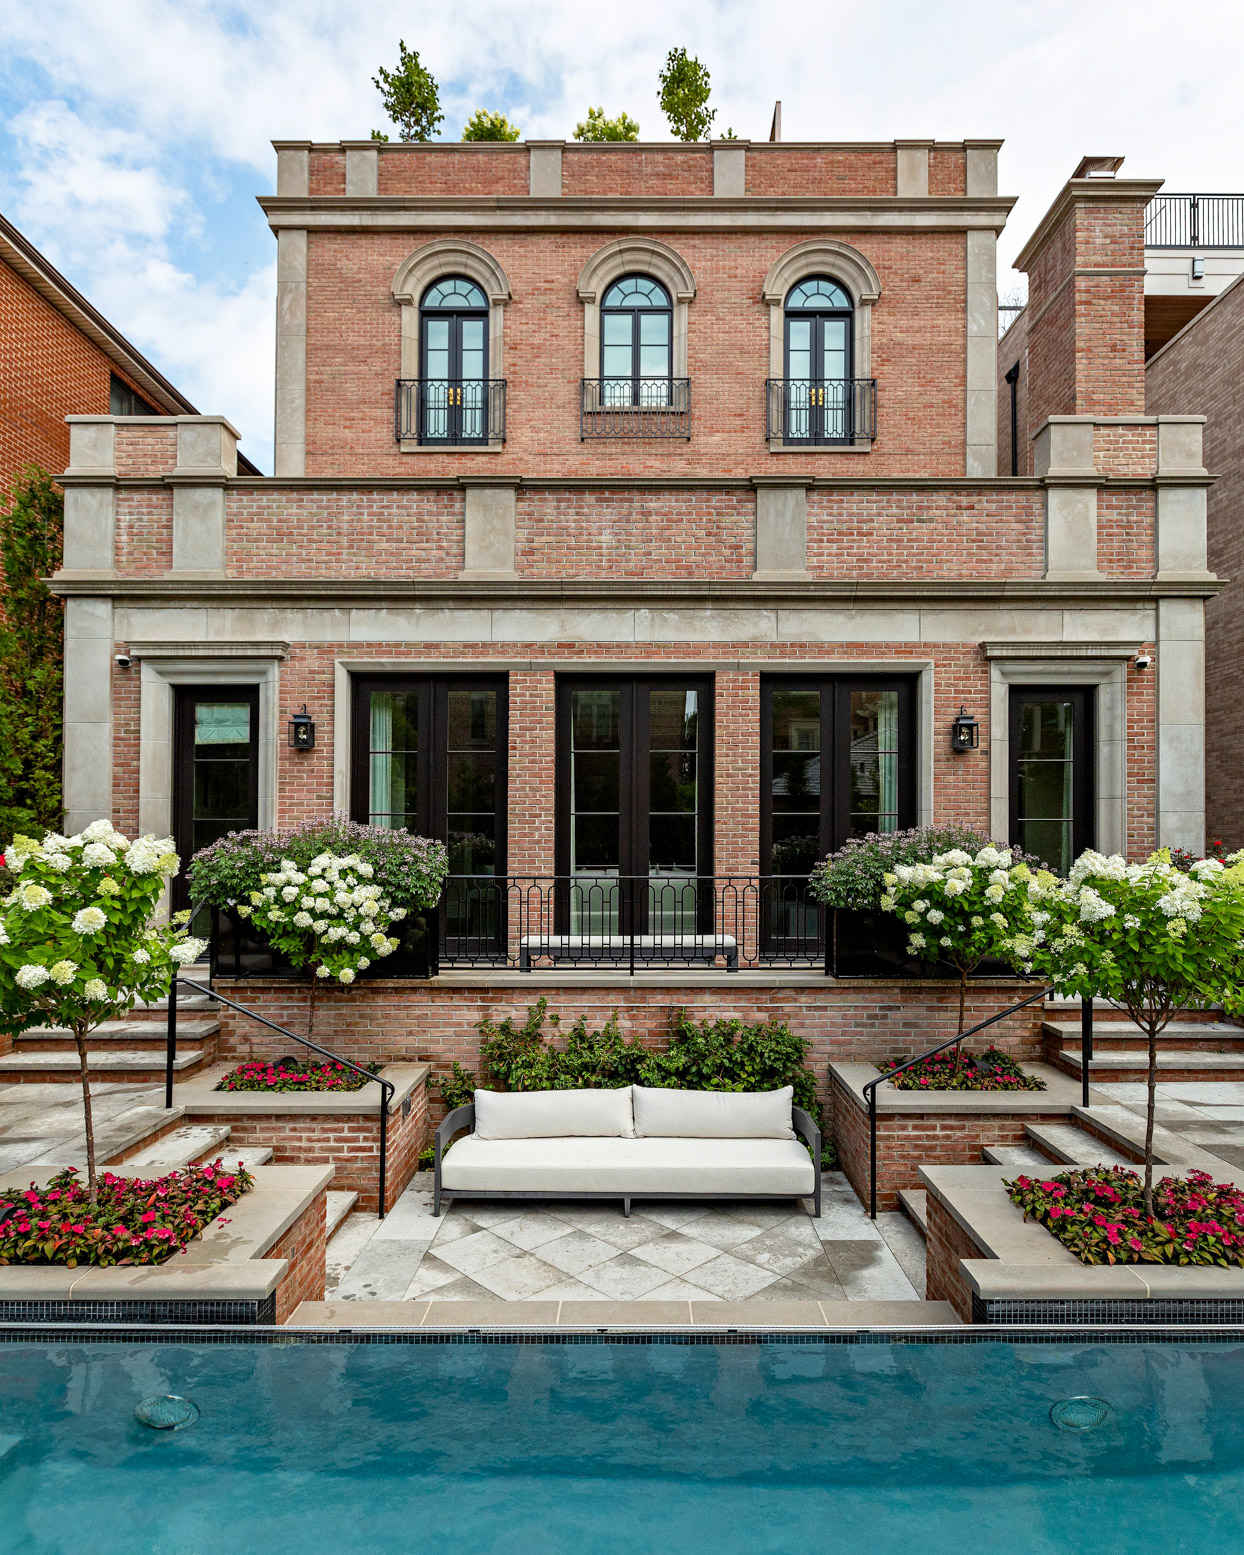 exterior shot of brick home with swimming pool